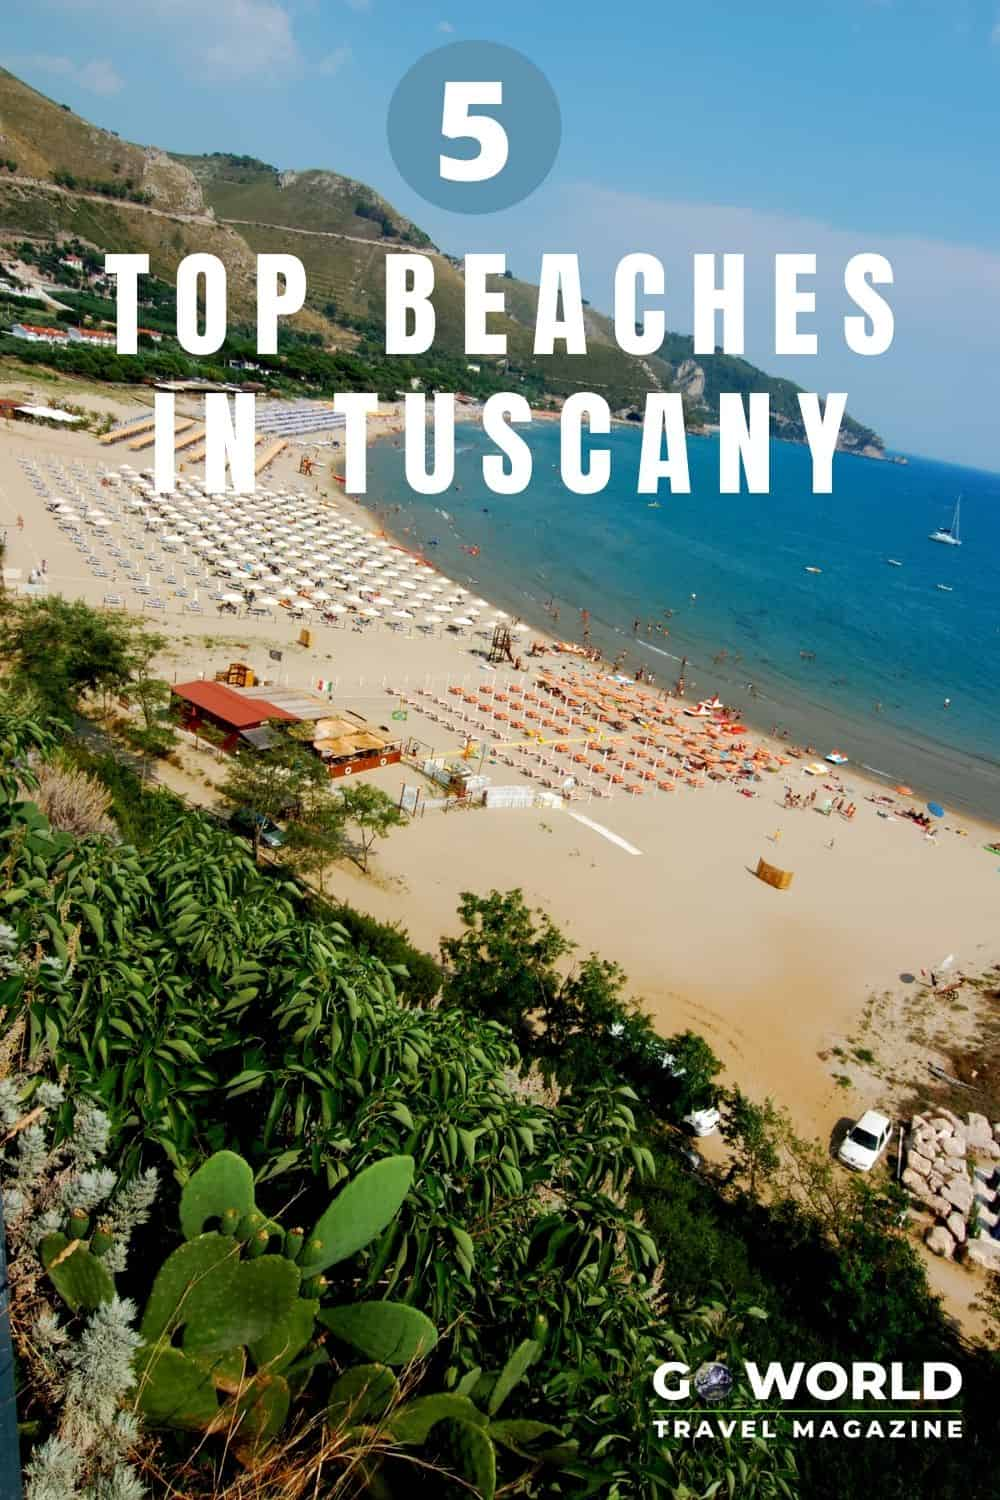 Discover these top 5 beaches in Tuscany and add a trip to the gorgeous Riviera coastline to your Italian vacation! #Tuscany #Beachvacation #Italy #ItalianRiviera